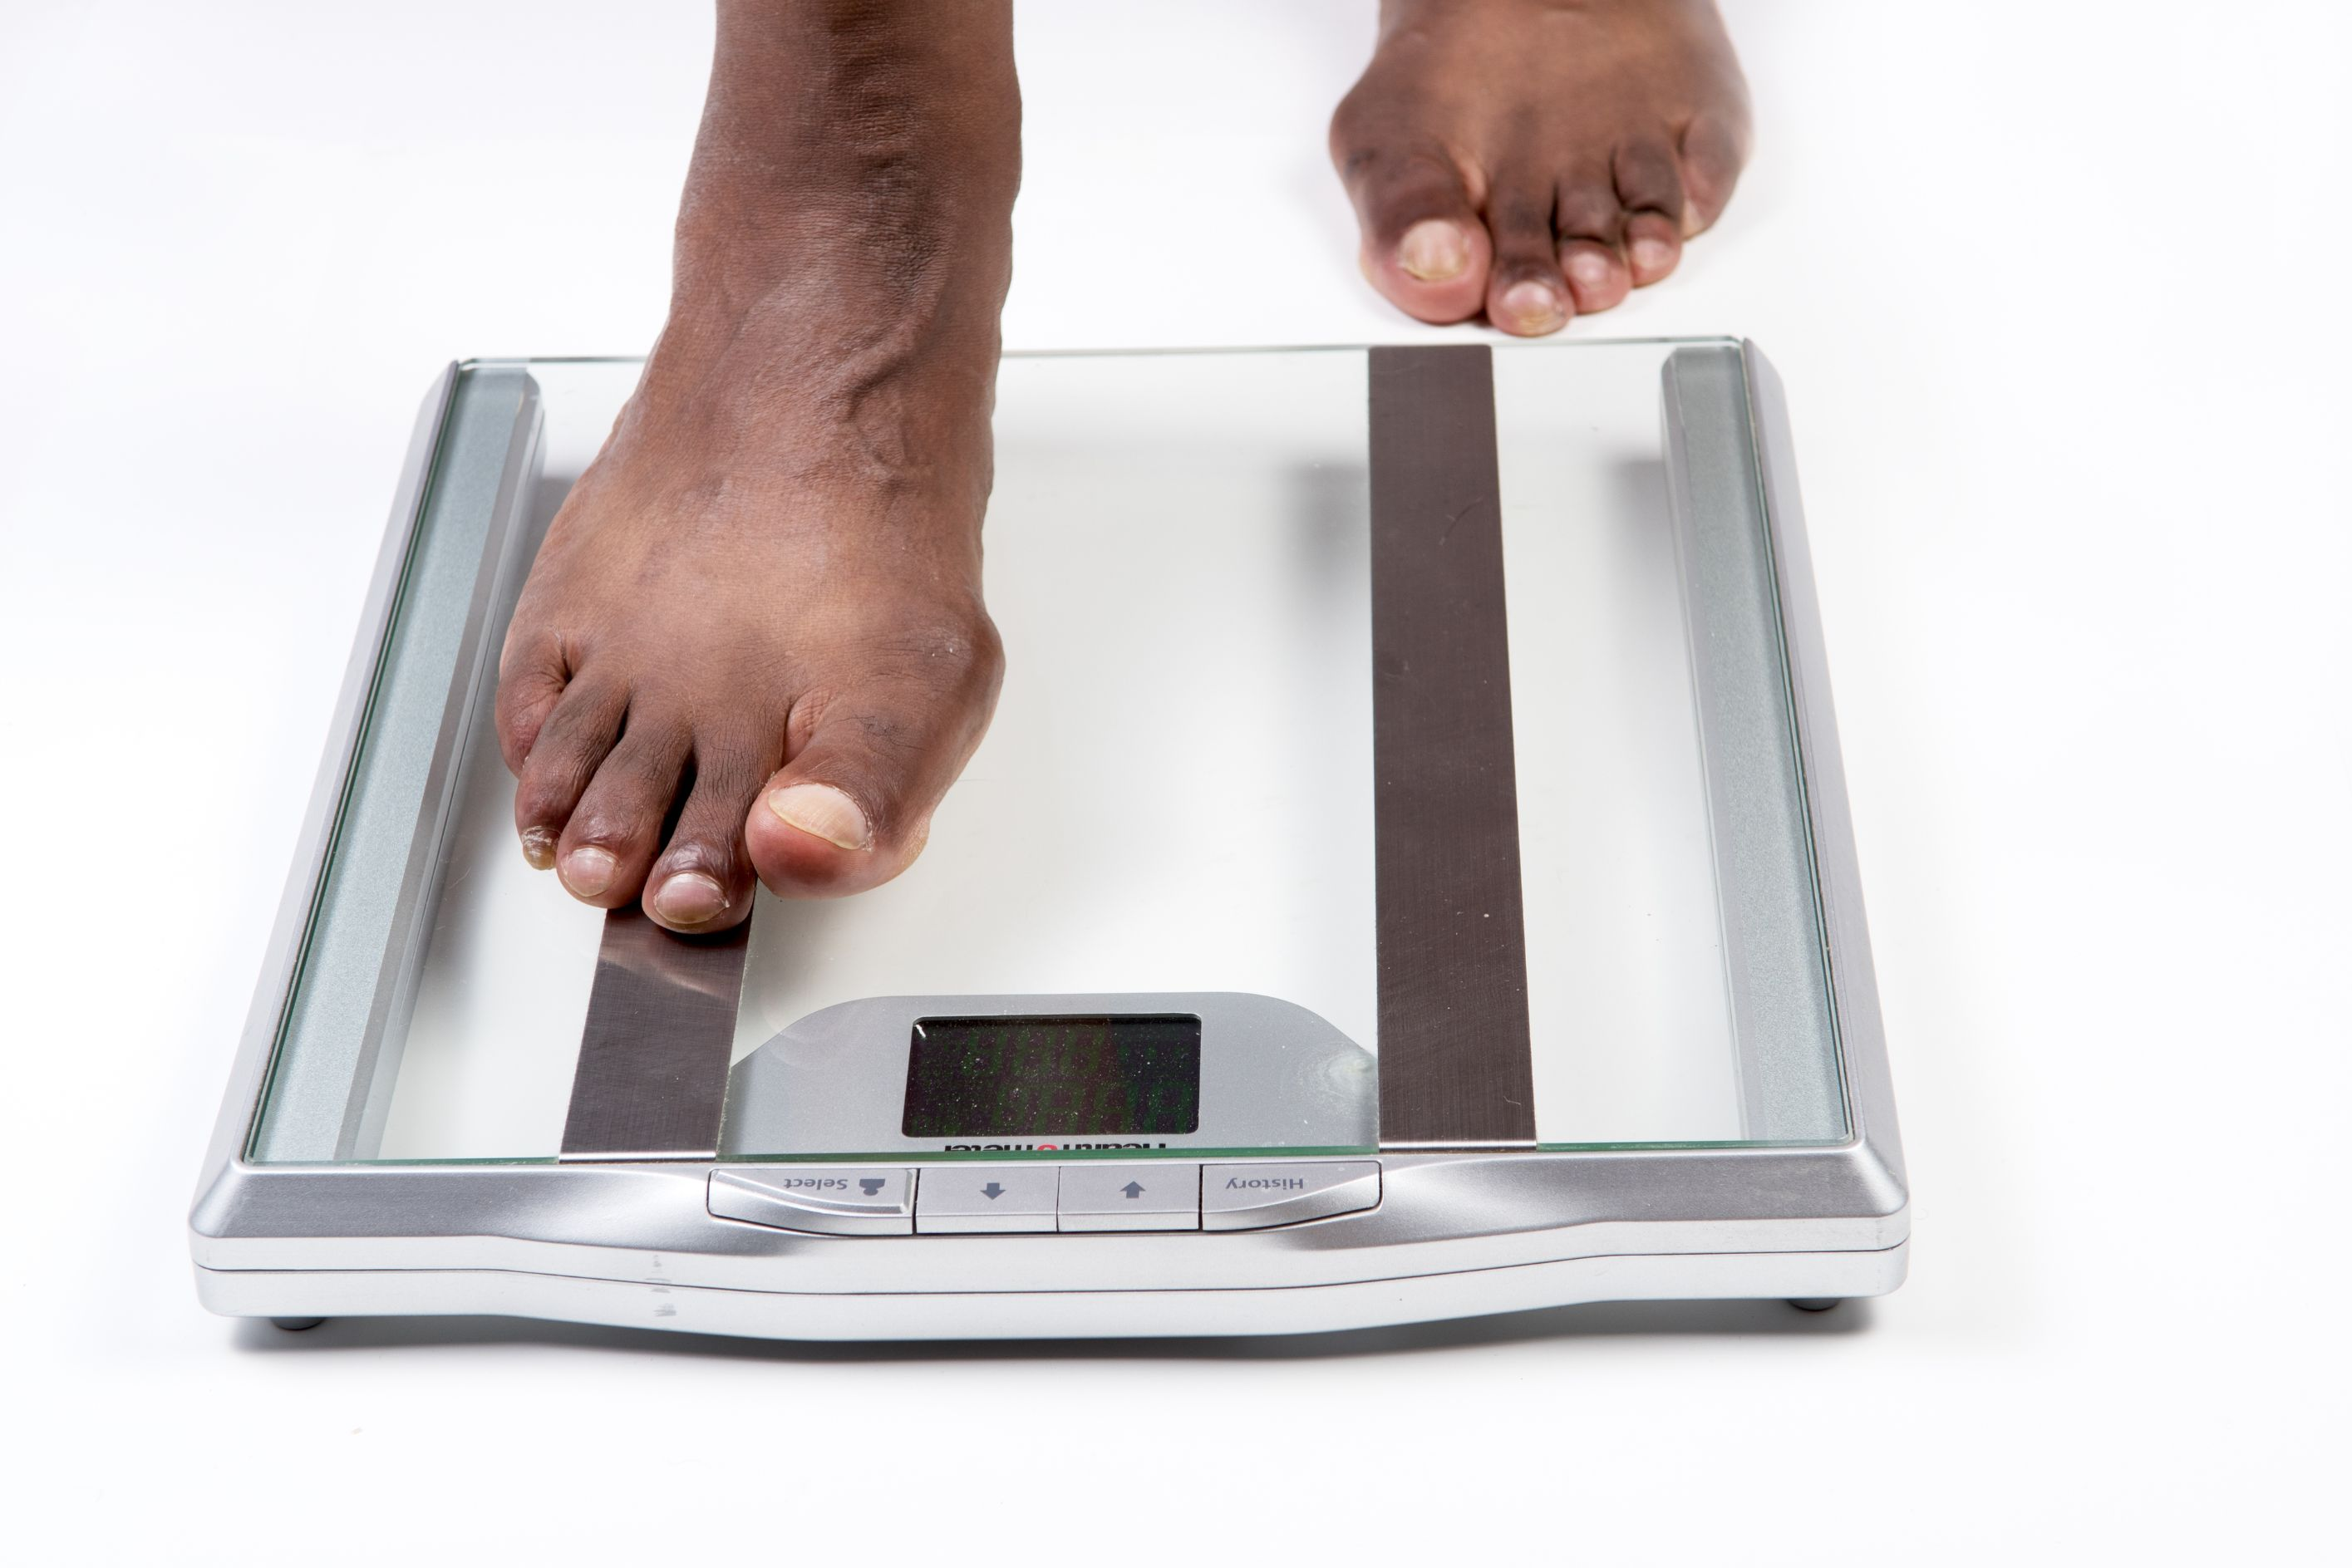 BMI Calculator for Adults